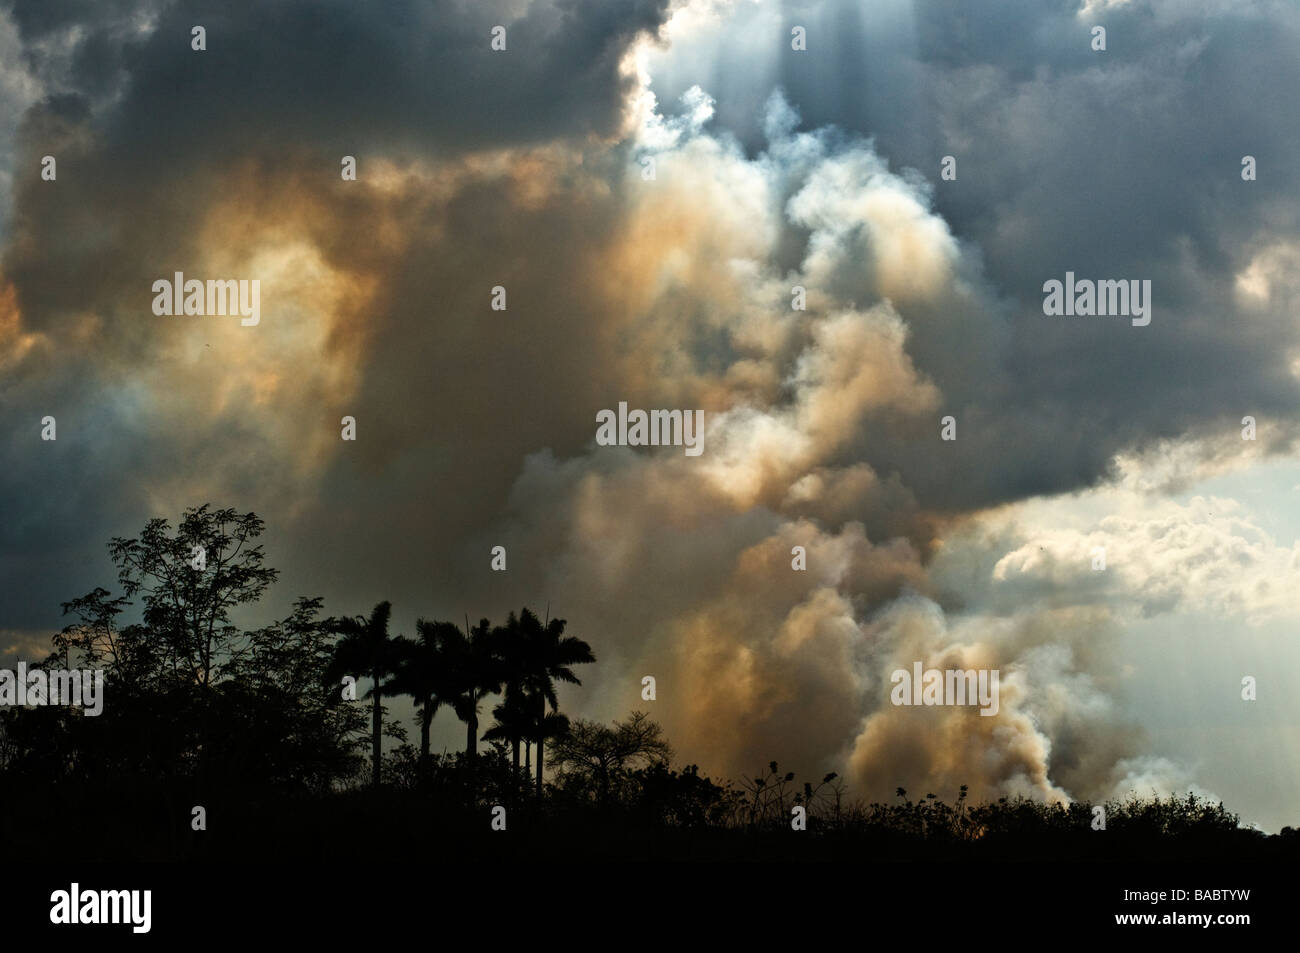 Fire storm over the fields of sugar cane in rural Cuba. Stock Photo